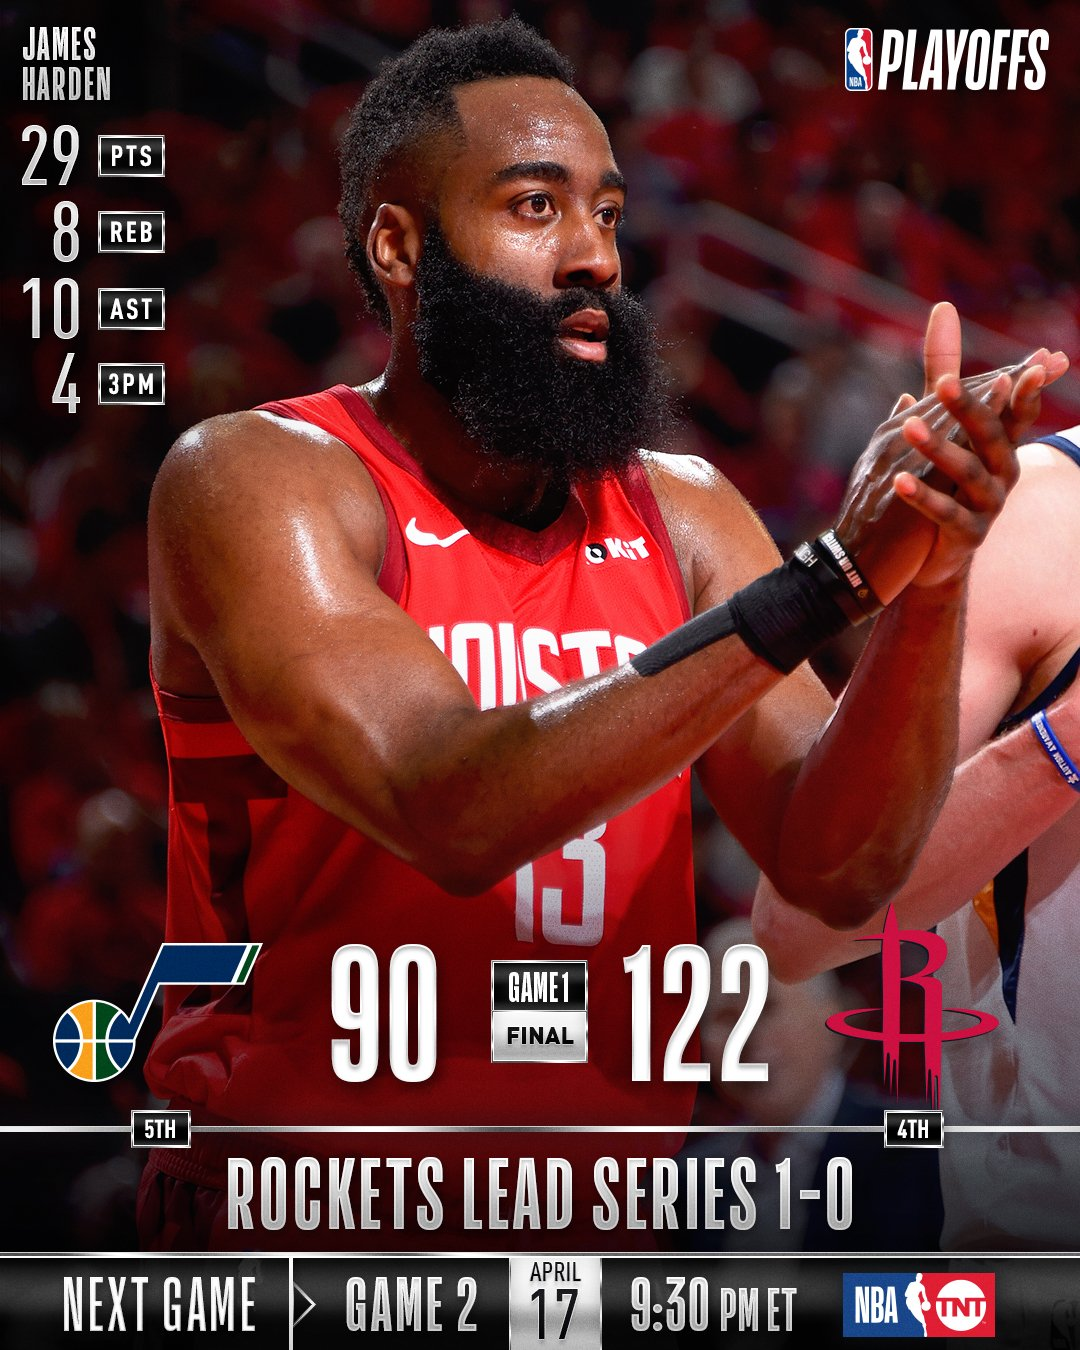 The @HoustonRockets win Game 1 at Toyota Center!  Game 2: Wednesday (4/17), 9:30pm/et, TNT  #NBAPlayoffs https://t.co/8e5uc2aVpX